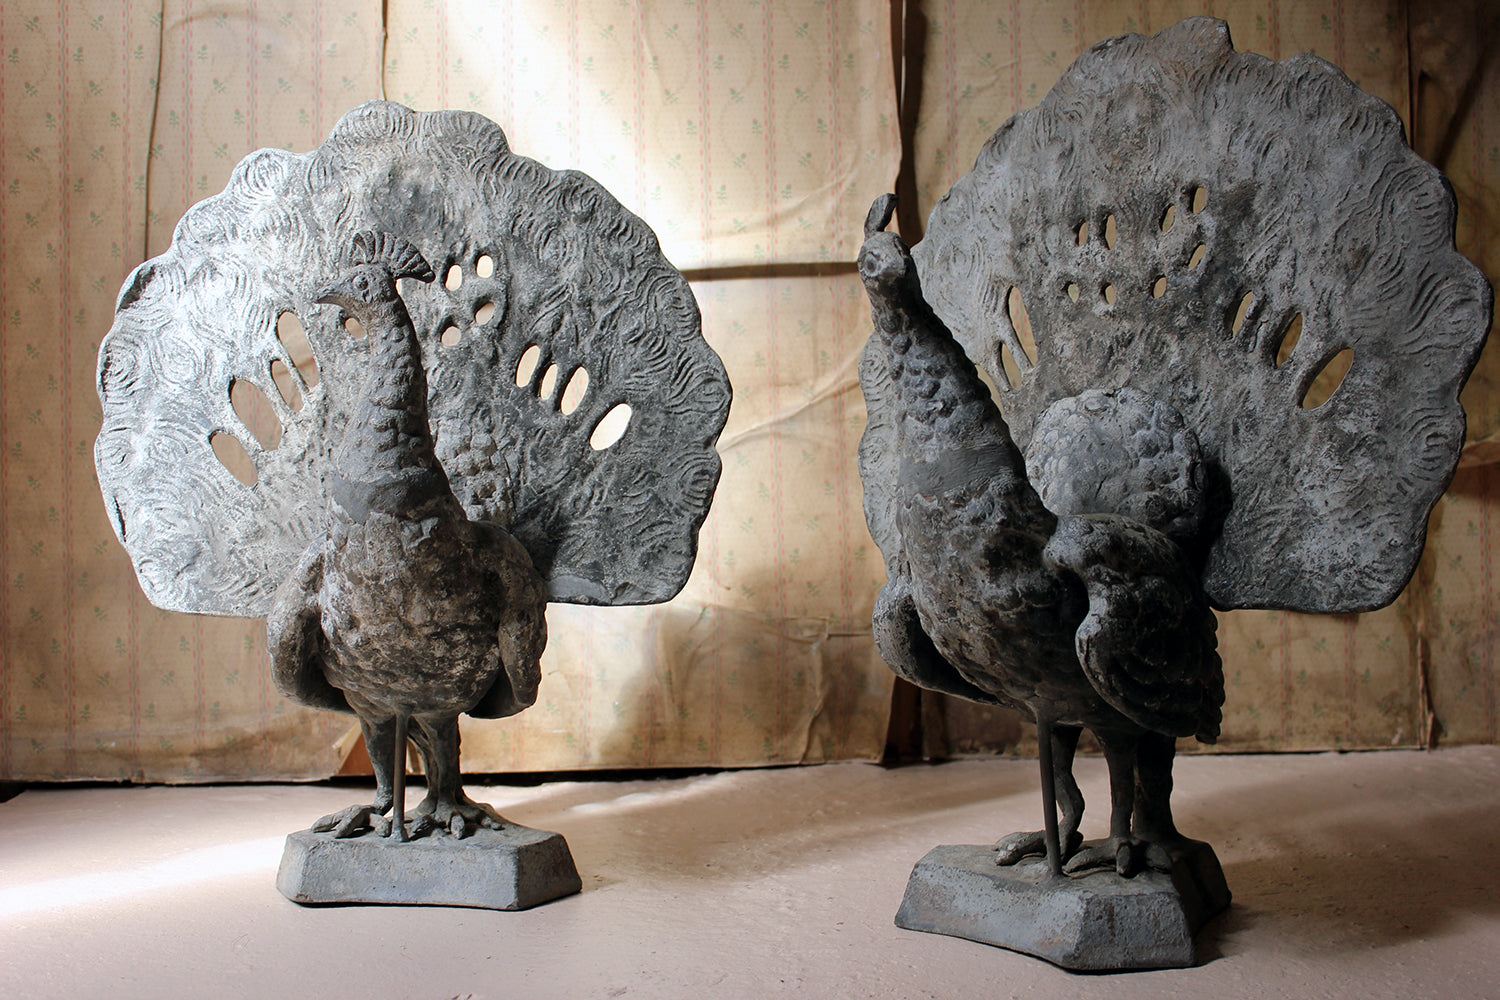 A Large Pair of Late Victorian Lead Sculptures of Peacocks c.1900